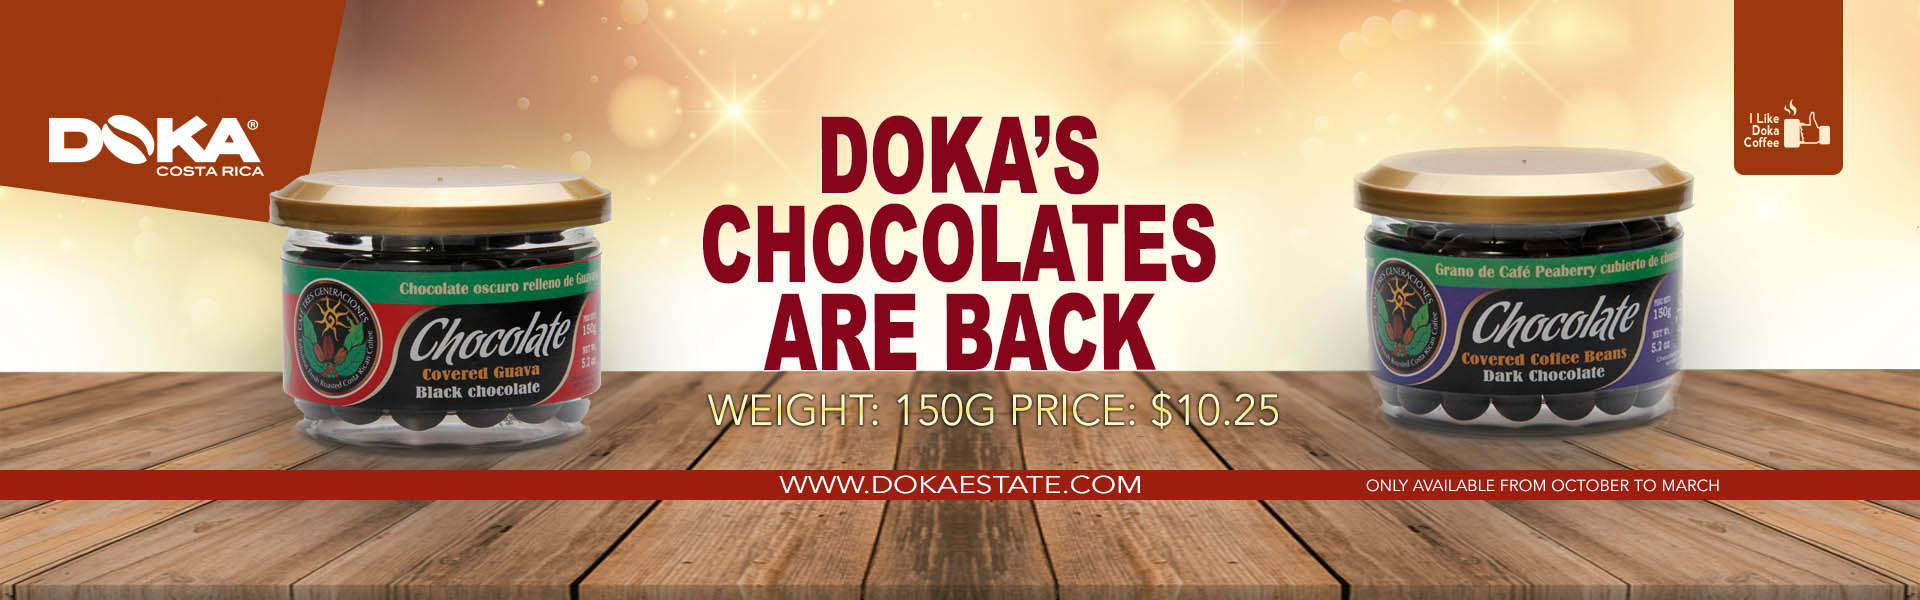 Doka's Coffee and Chocolate